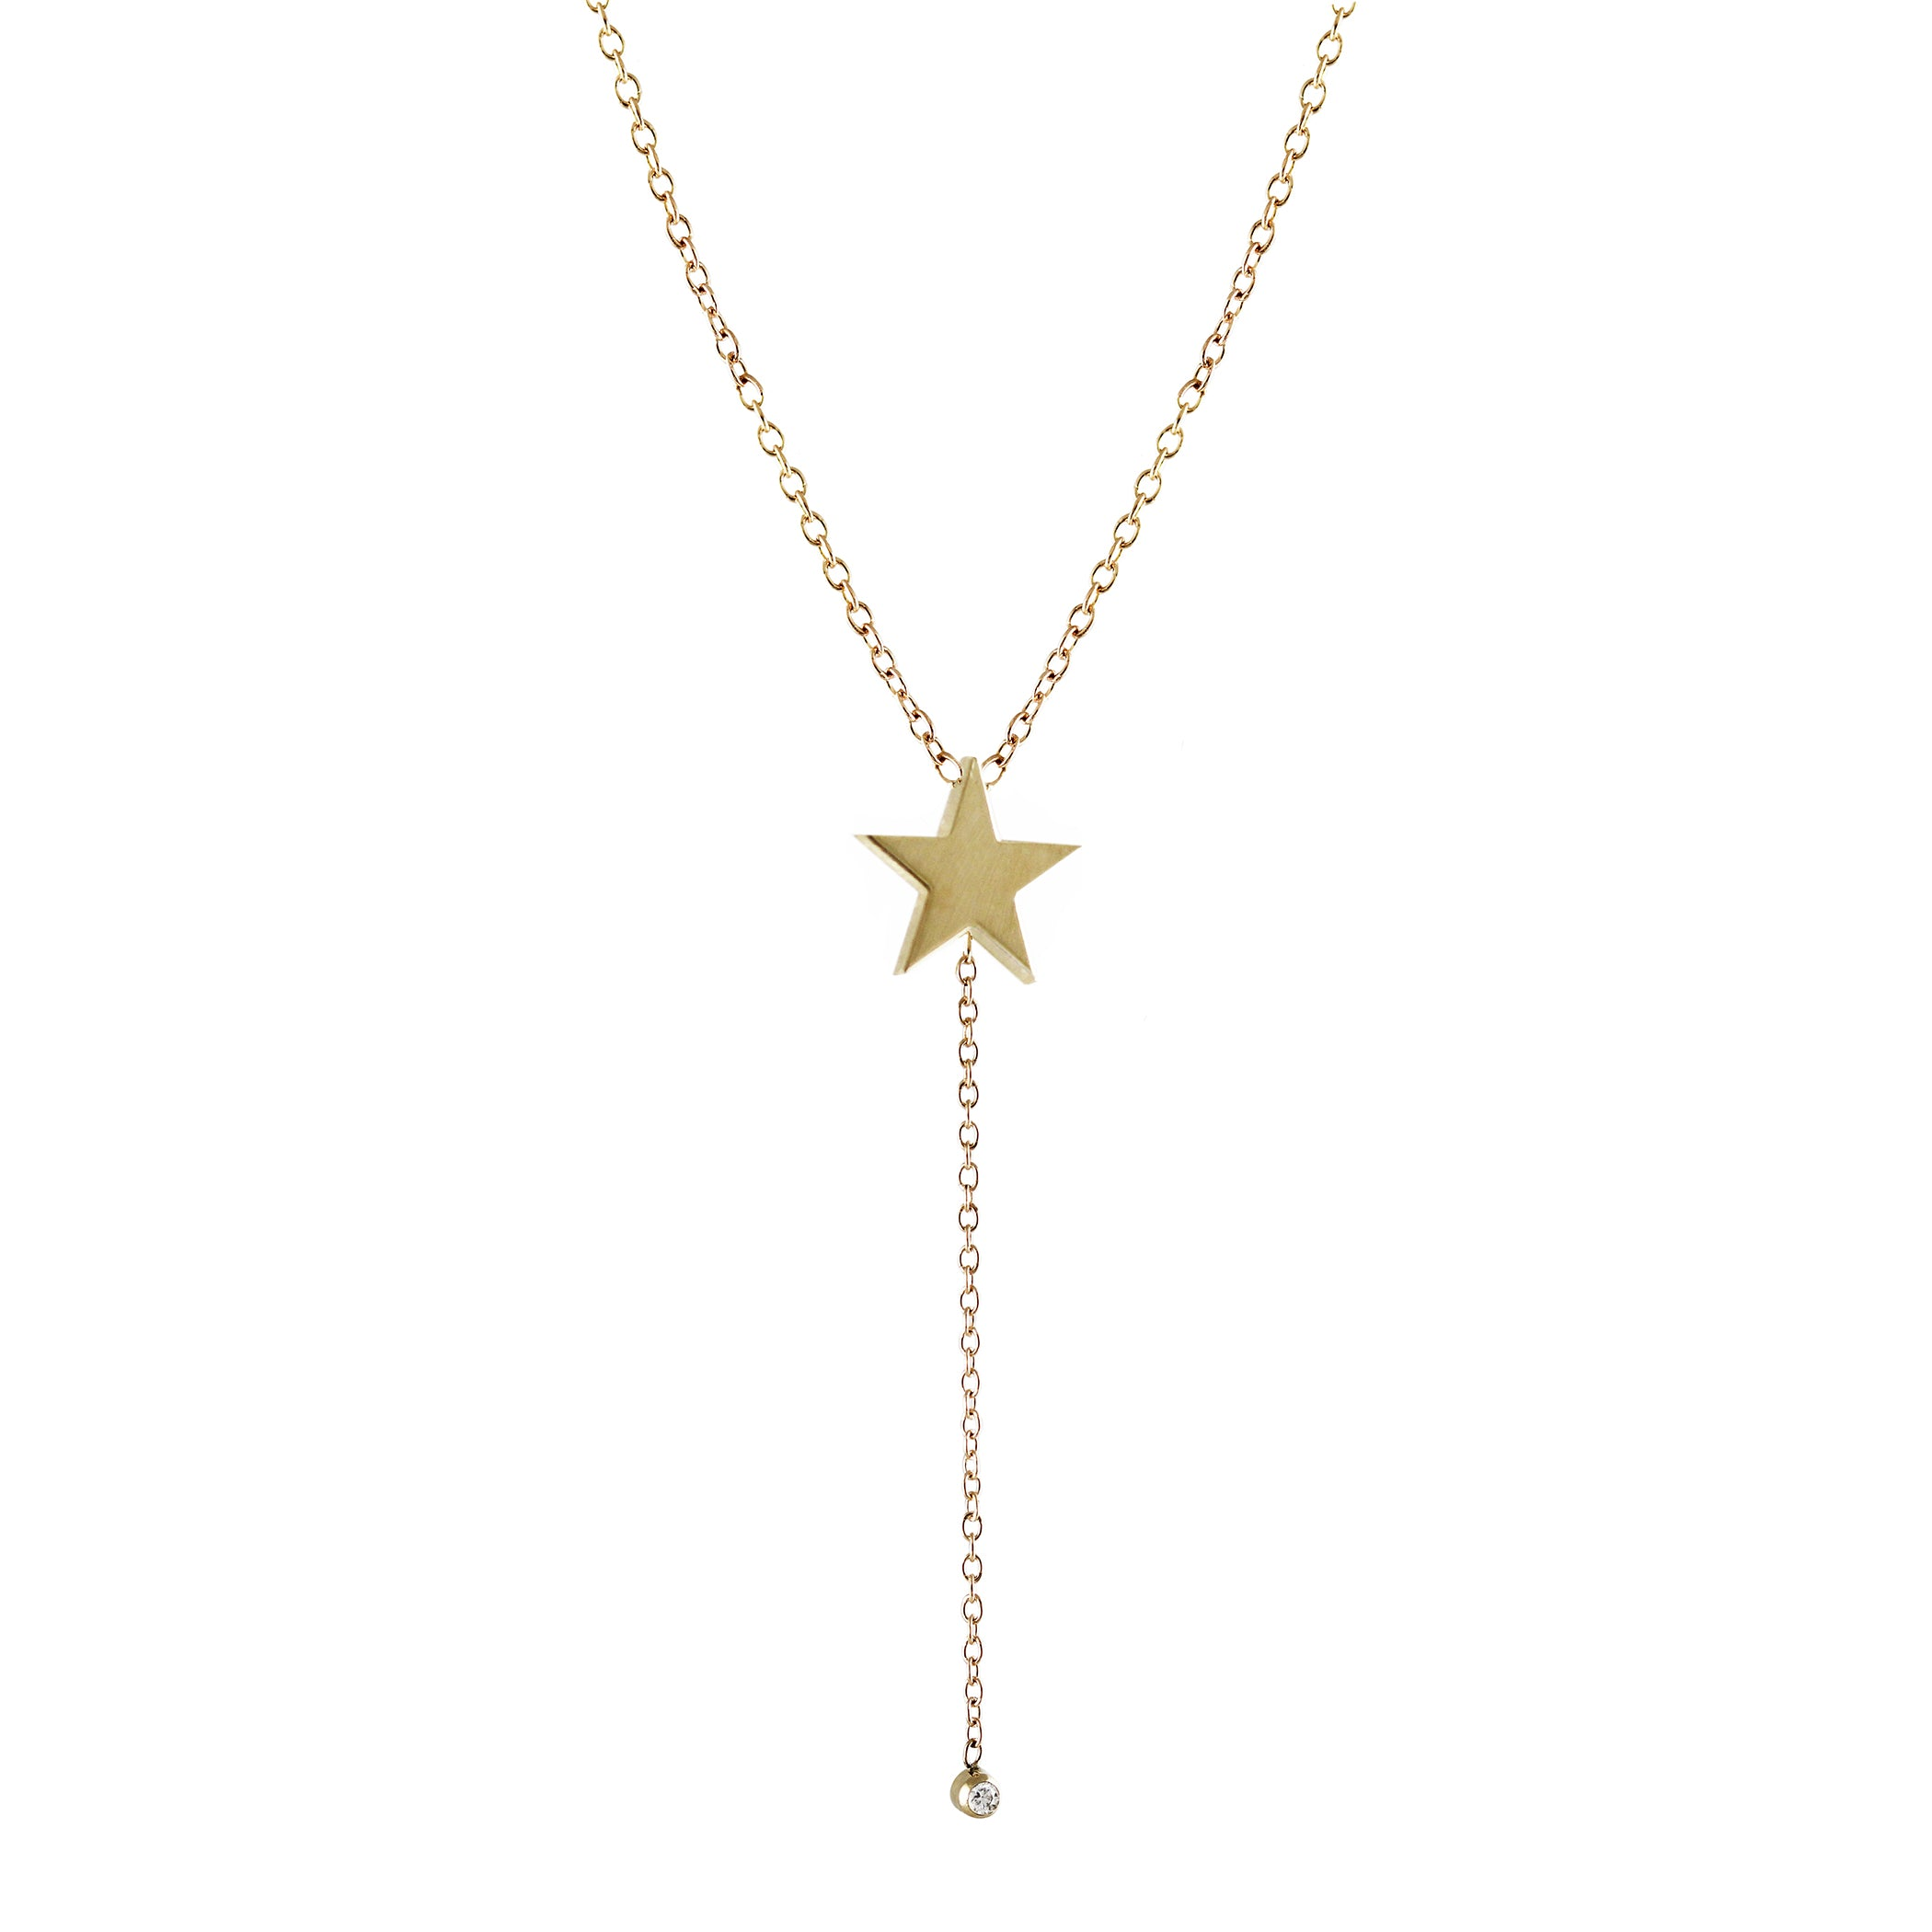 STAR LARIAT WITH DIAMOND END